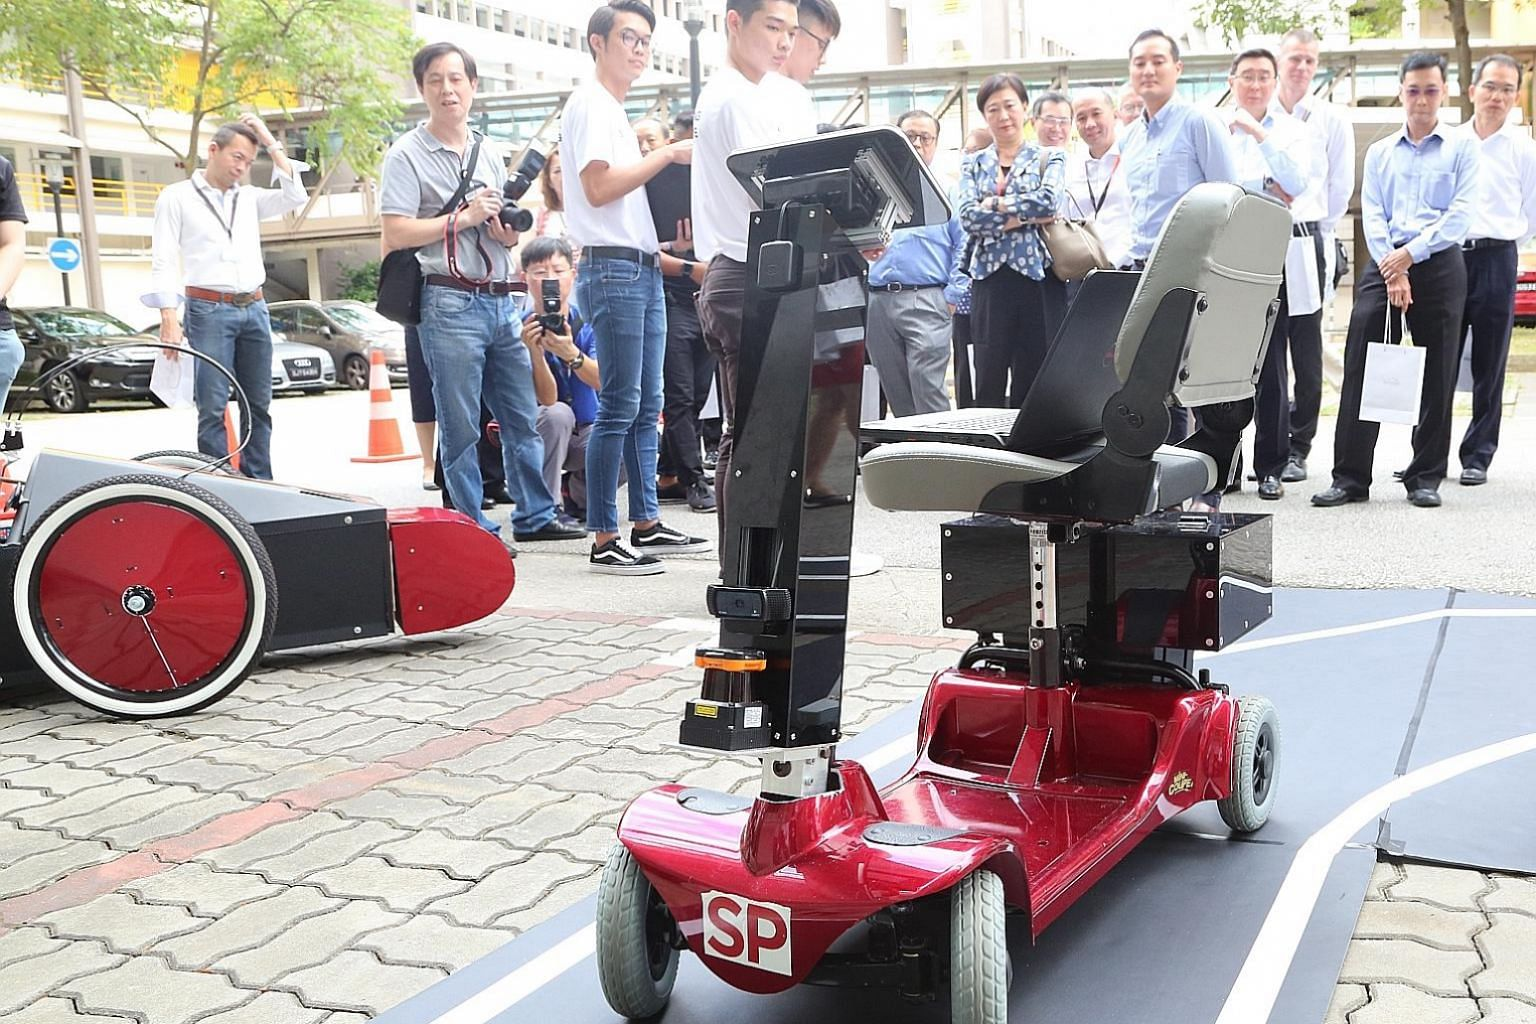 Engineering students from Singapore Polytechnic demonstrating how their project, SP Driverless And Electrifying Car, works at Singapore Polytechnic Engineering Show 2019 and 5G Garage opening event yesterday.